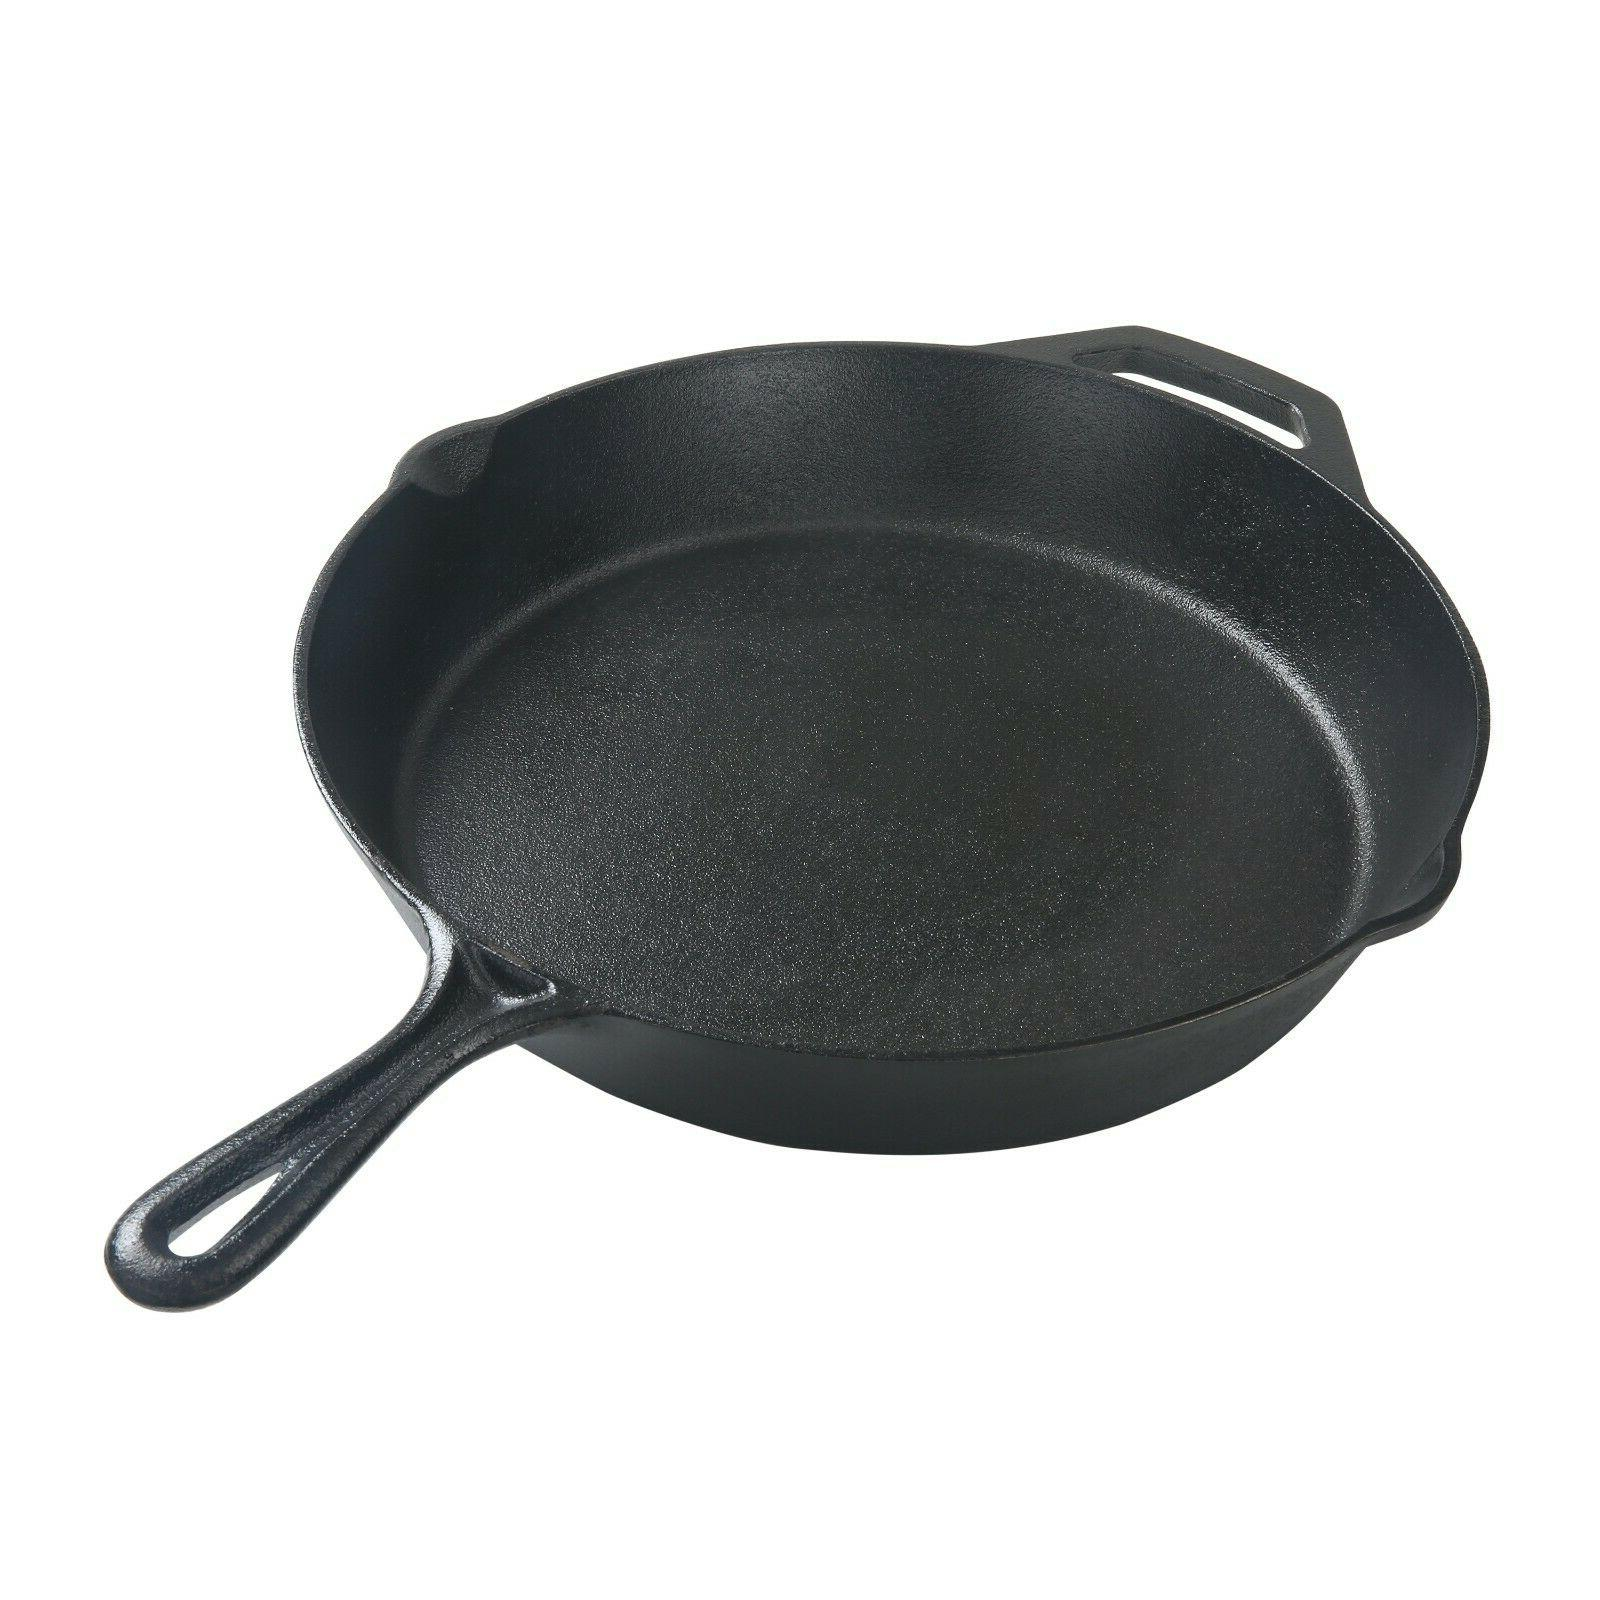 12 Inch Durable Cast Iron Skillet